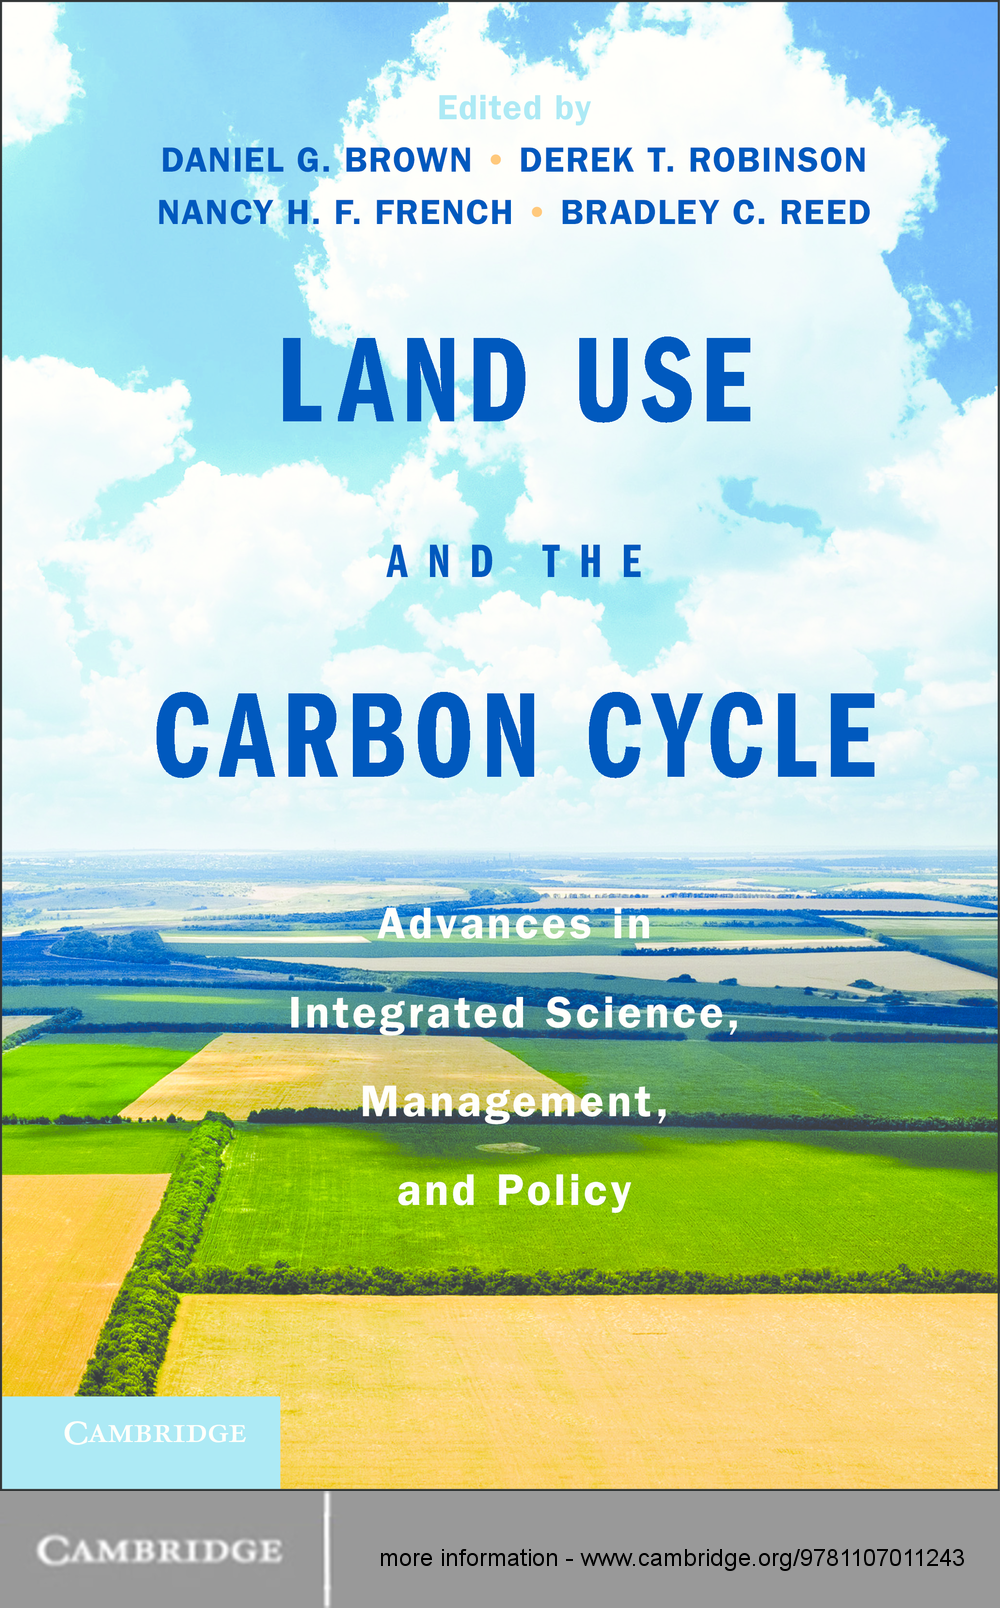 Land Use and the Carbon Cycle Advances in Integrated Science,  Management,  and Policy